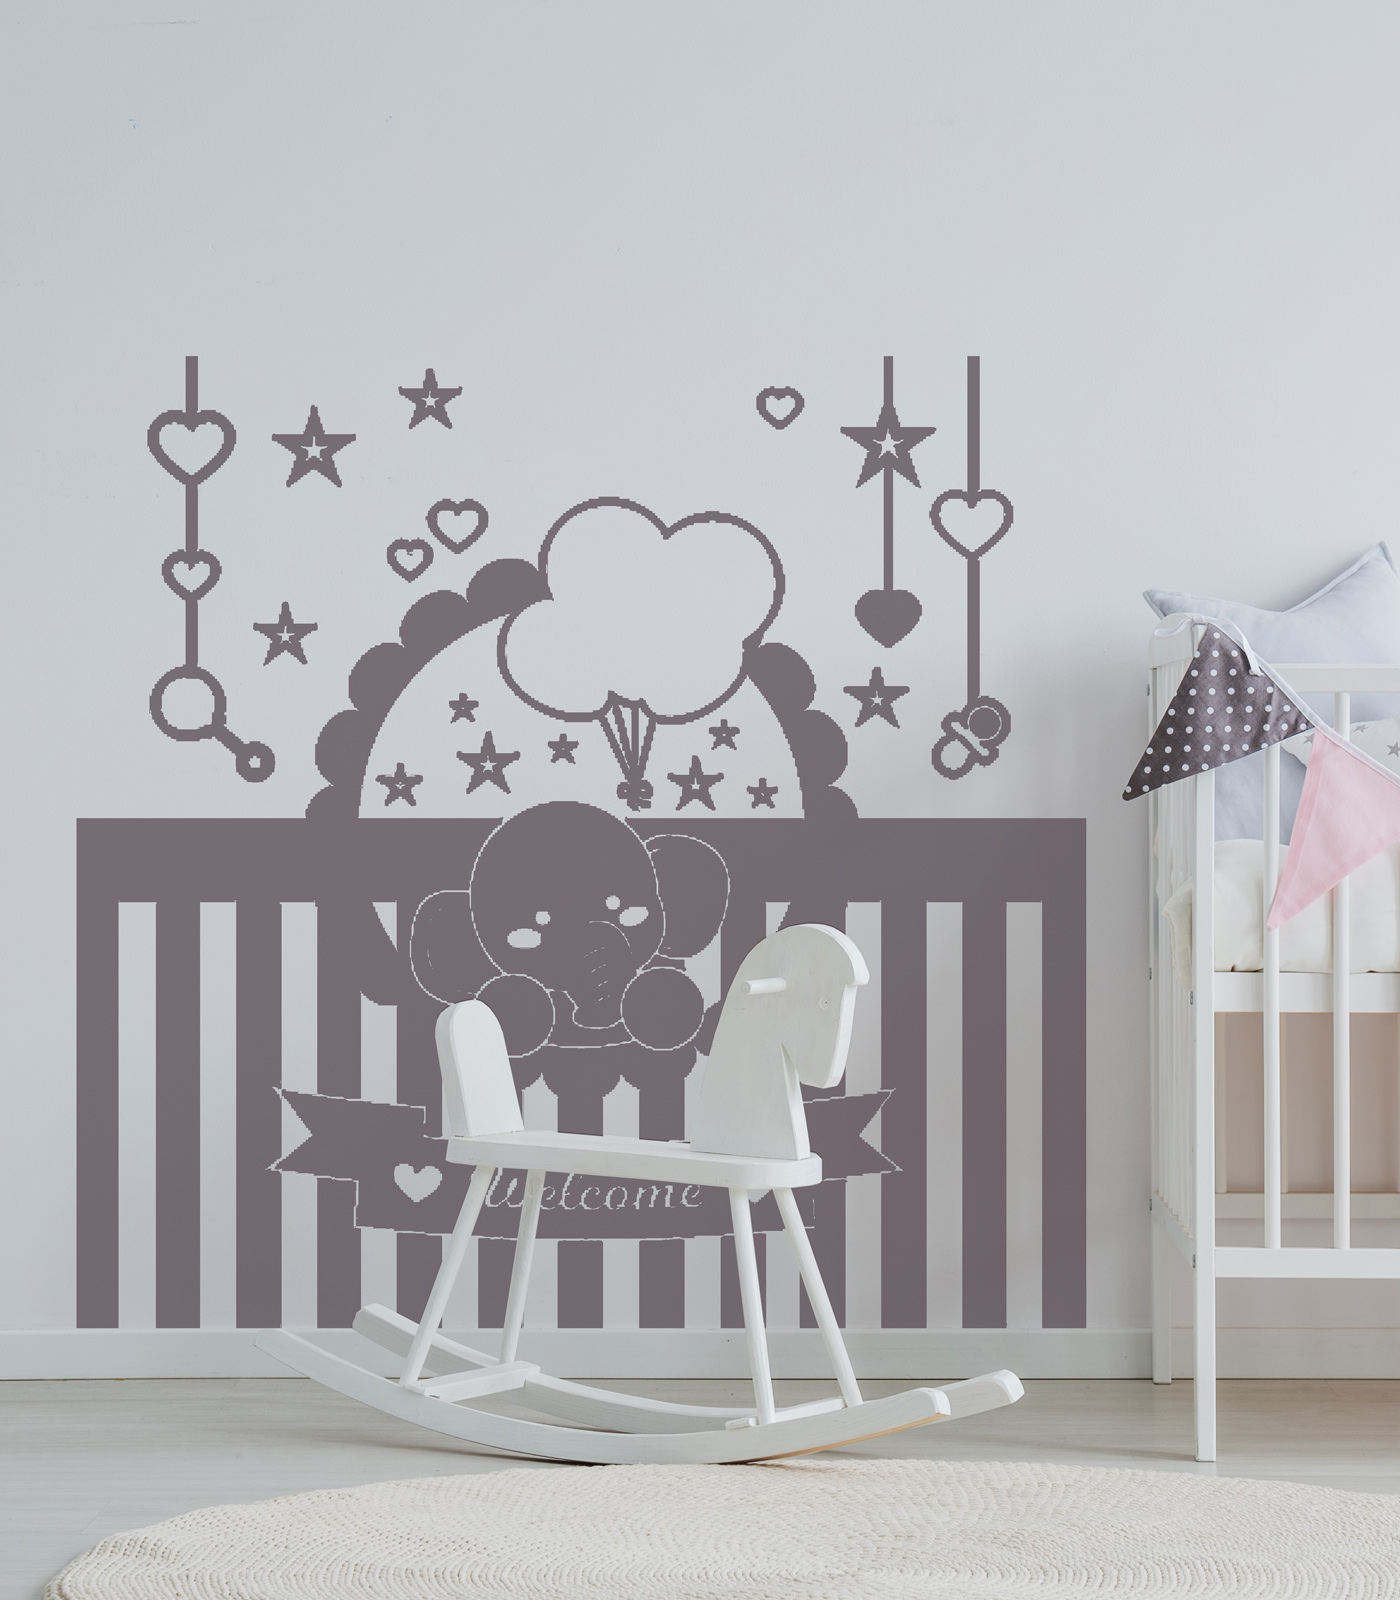 Welcome Baby-decoravinilos